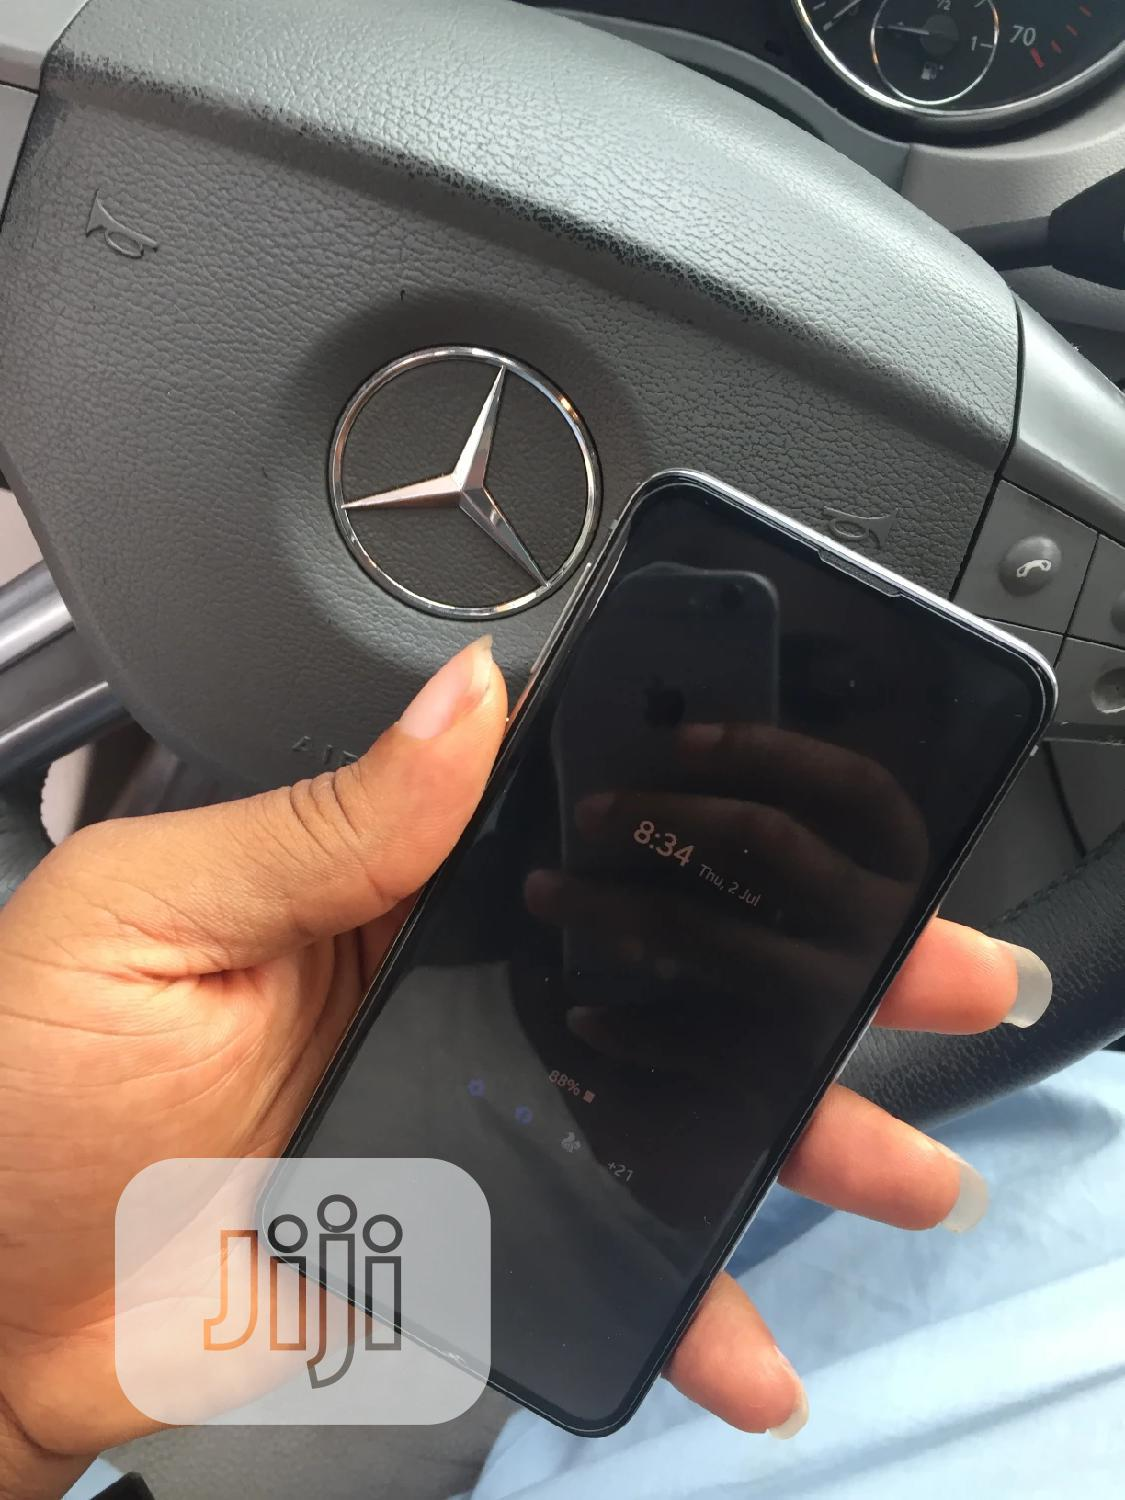 Samsung Galaxy S10e 128 GB White | Mobile Phones for sale in Port-Harcourt, Rivers State, Nigeria